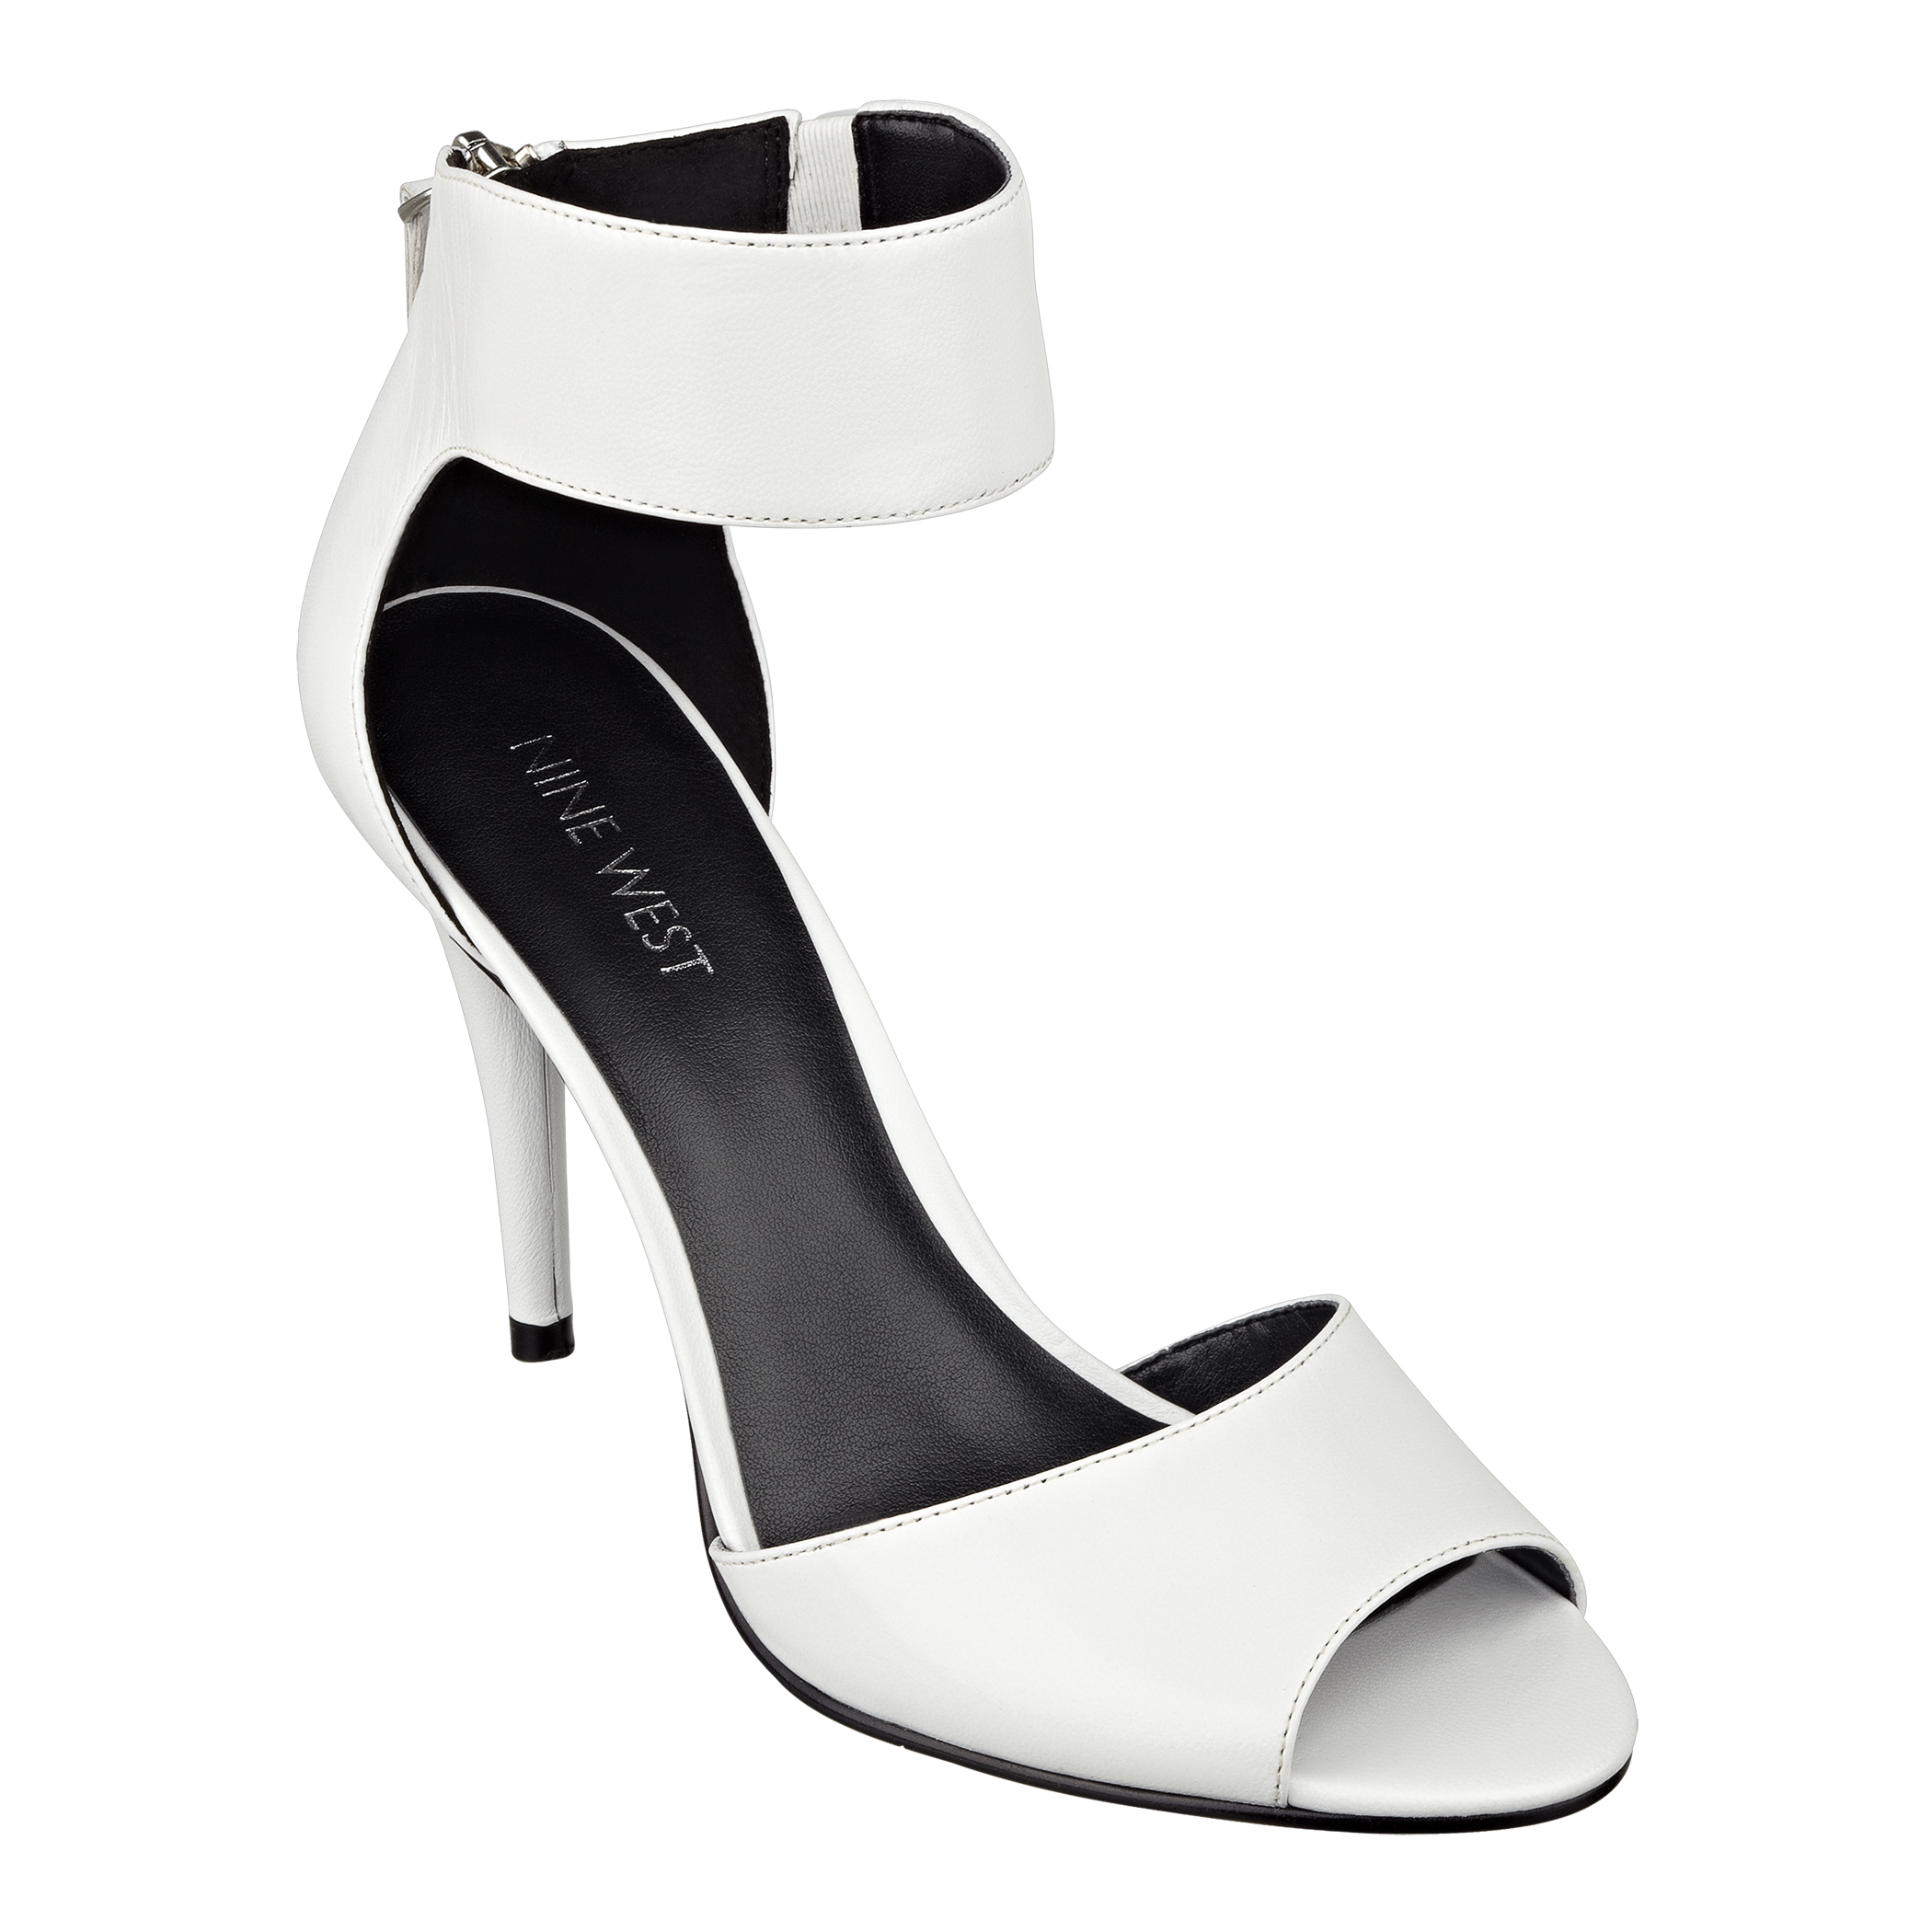 Latest Fashion of Stiletto & Heels Collection for women by Nine West (20)